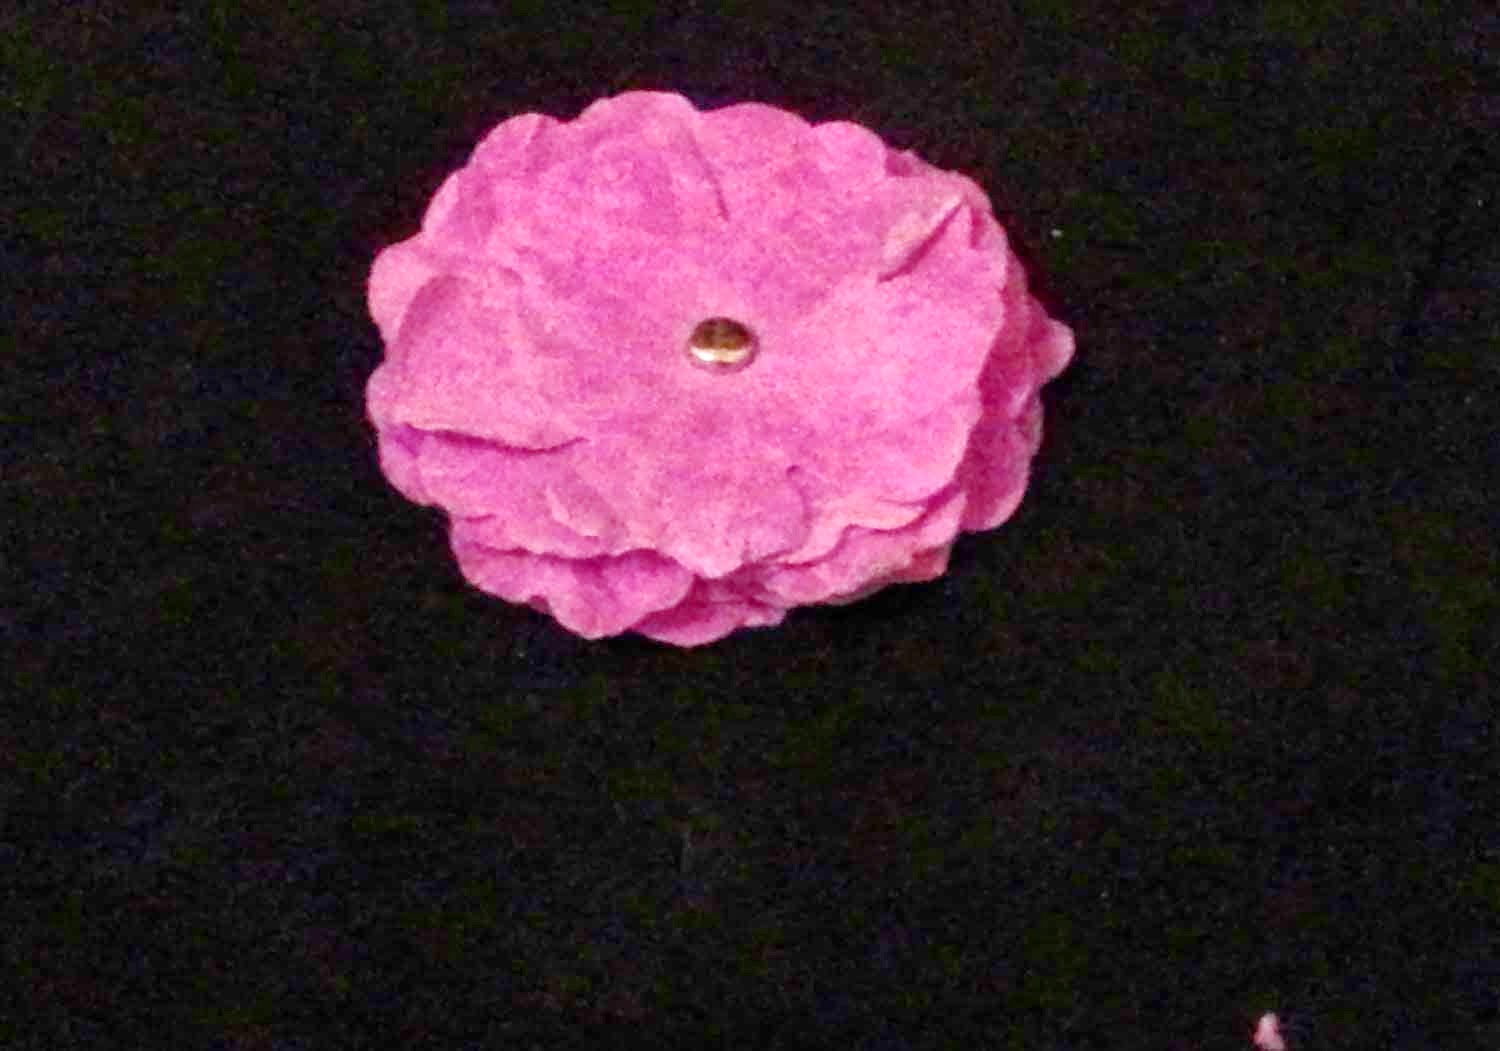 Do it yourself flowers, paper flowers, handmade flowers, how to make flowers.